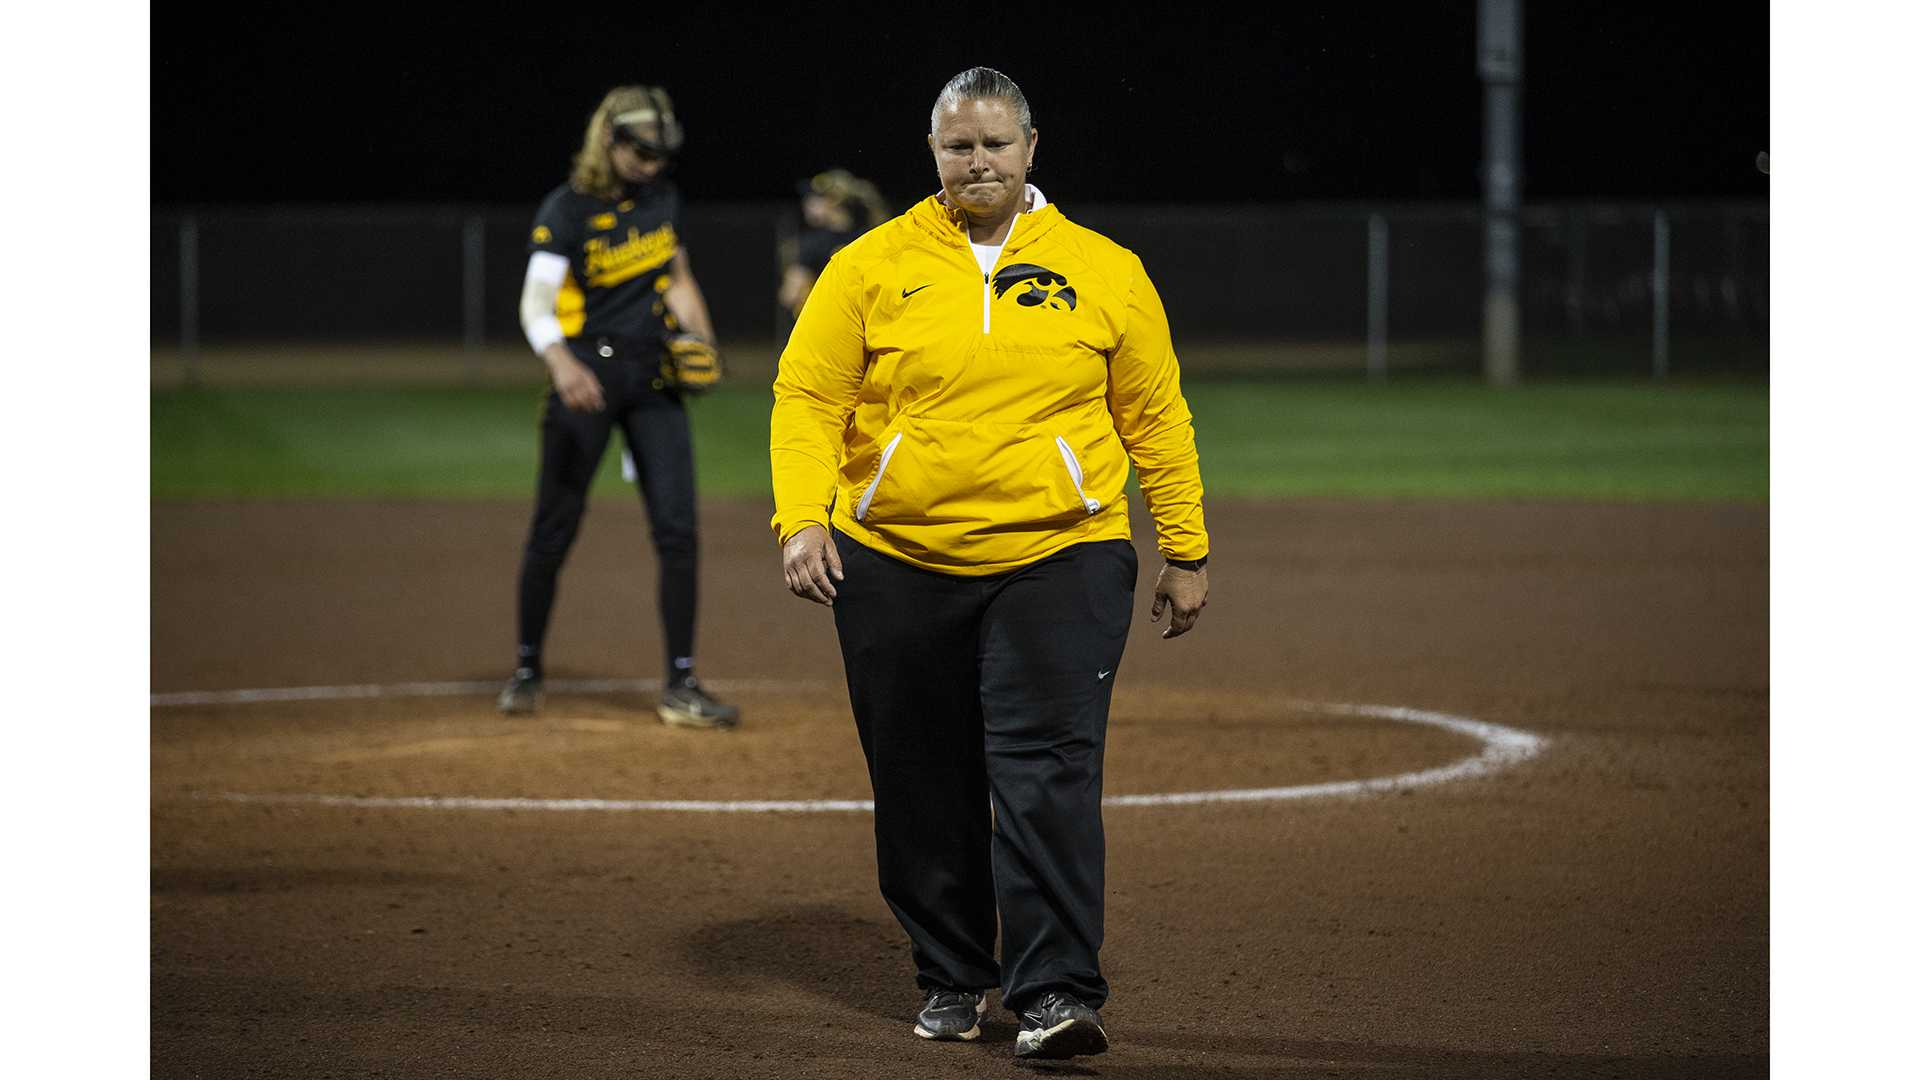 Softball head coach Marla Looper resigns